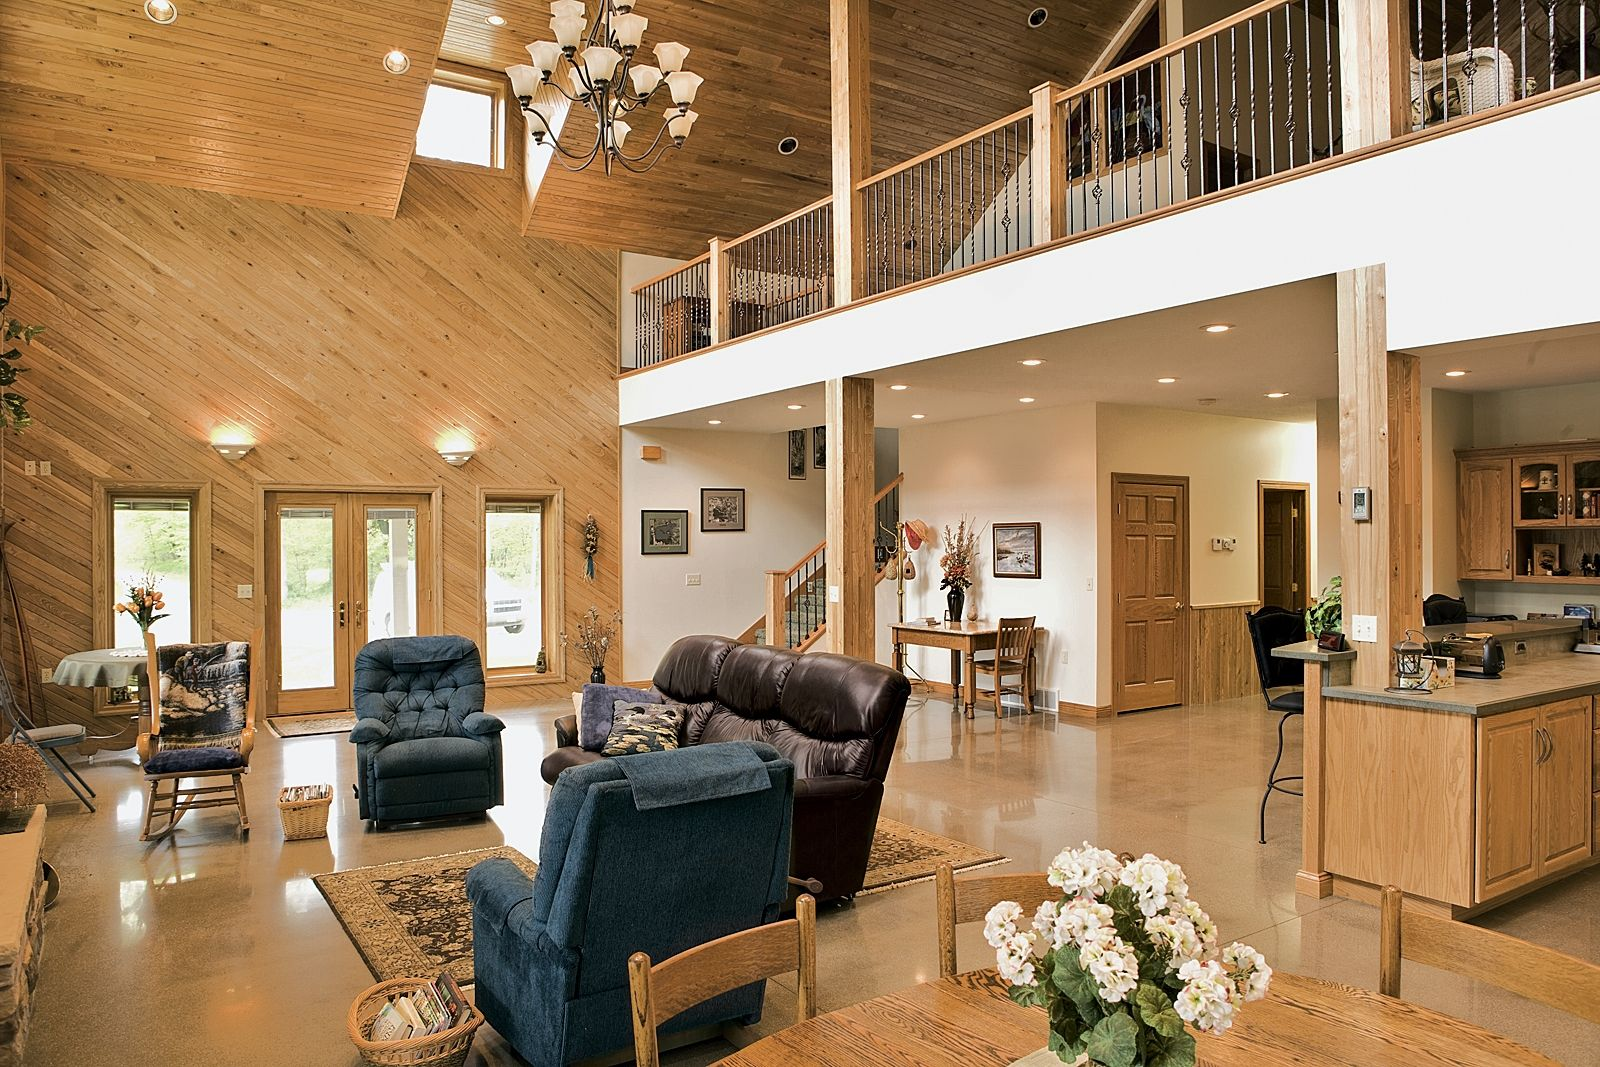 Pole barn home interior photos morton houses http also pin by cw hurley on around pinterest homes rh